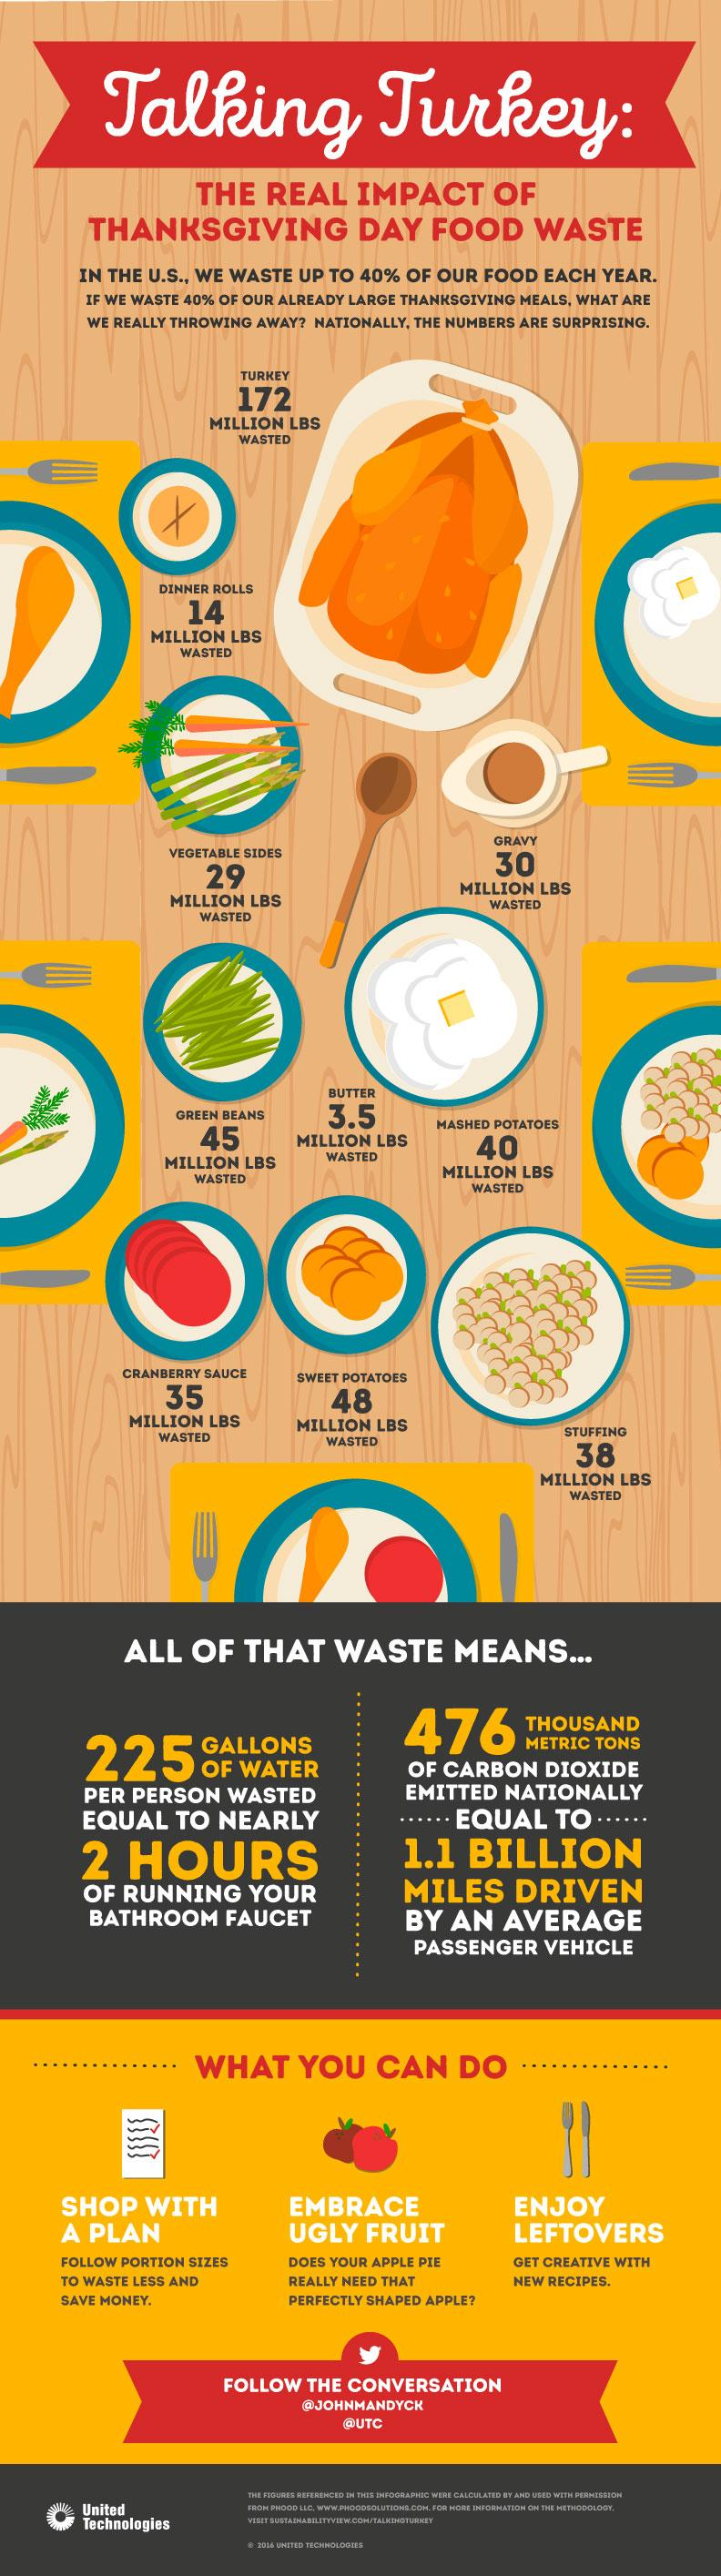 Thankgivinginfographic_111716.jpg